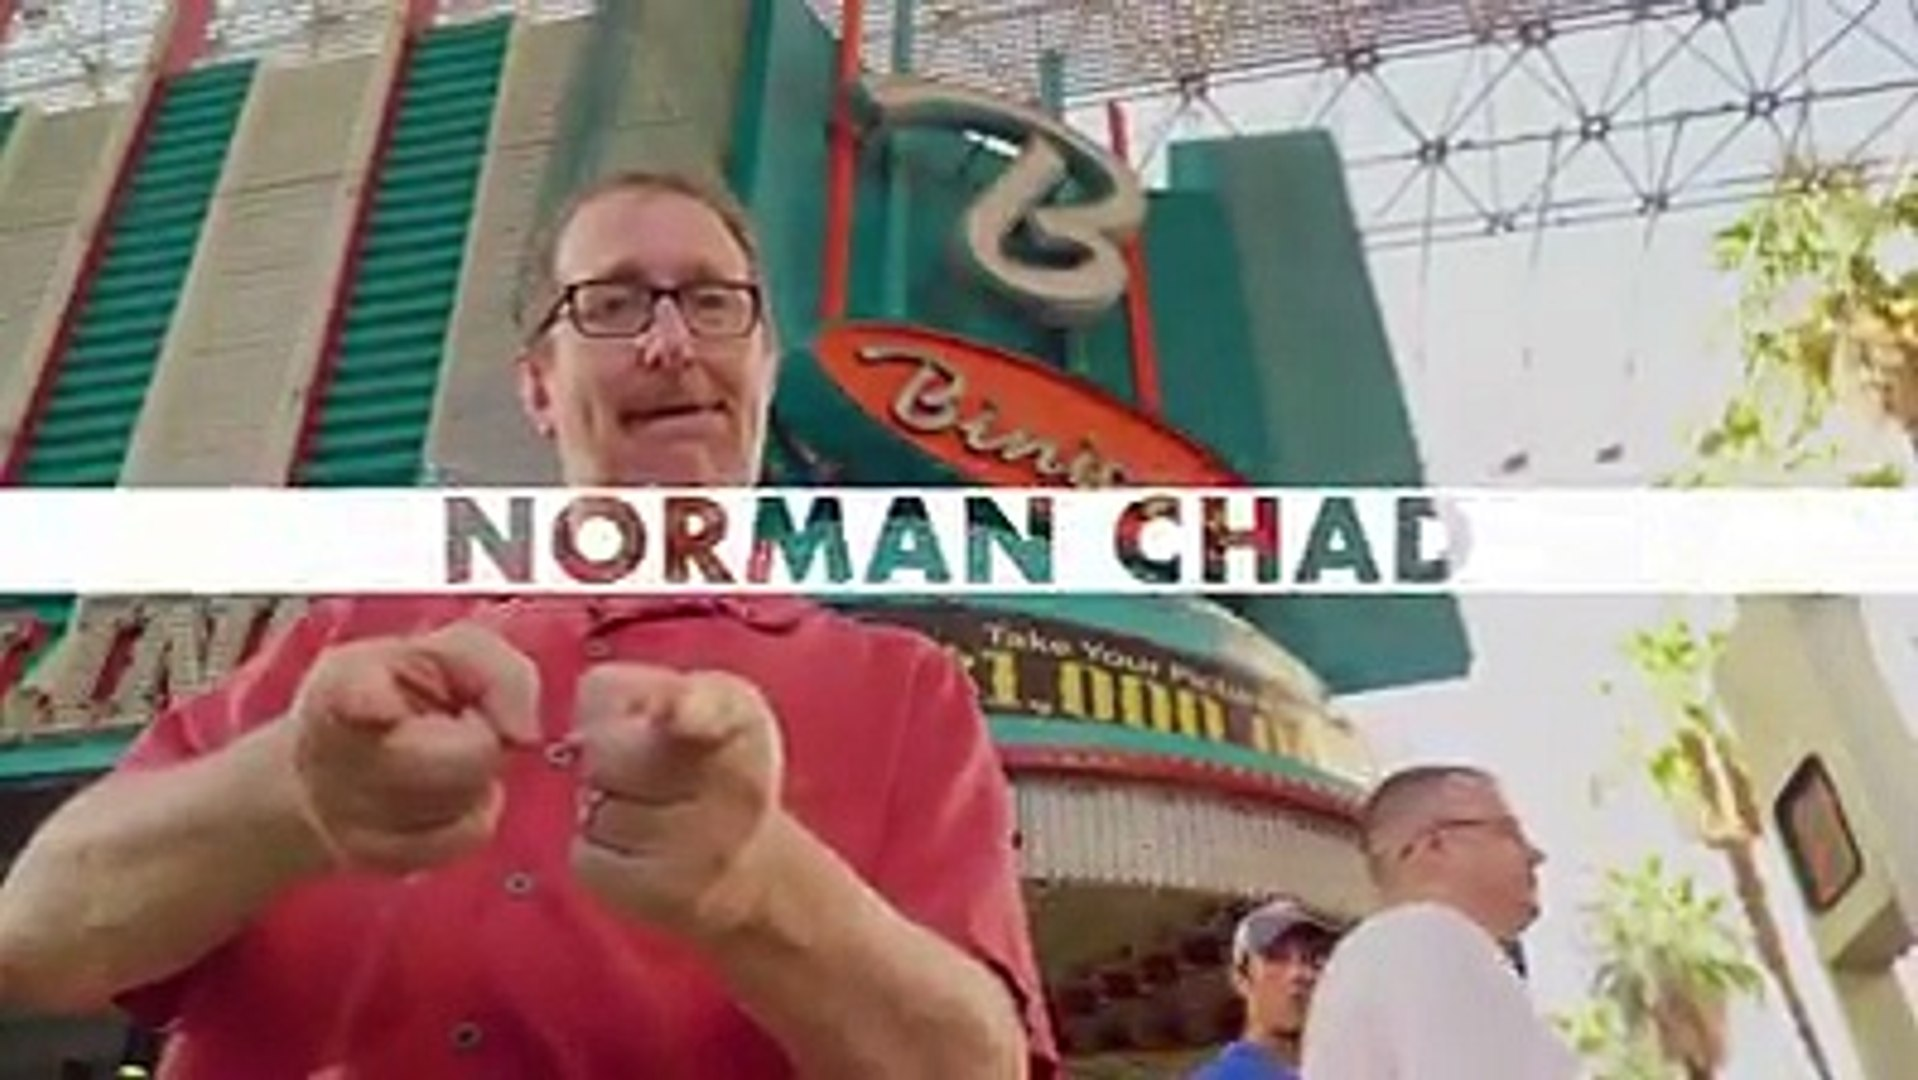 It's hard to imagine poker before Norman Chad, but those times did exist. ⌛ Learn how Norm got